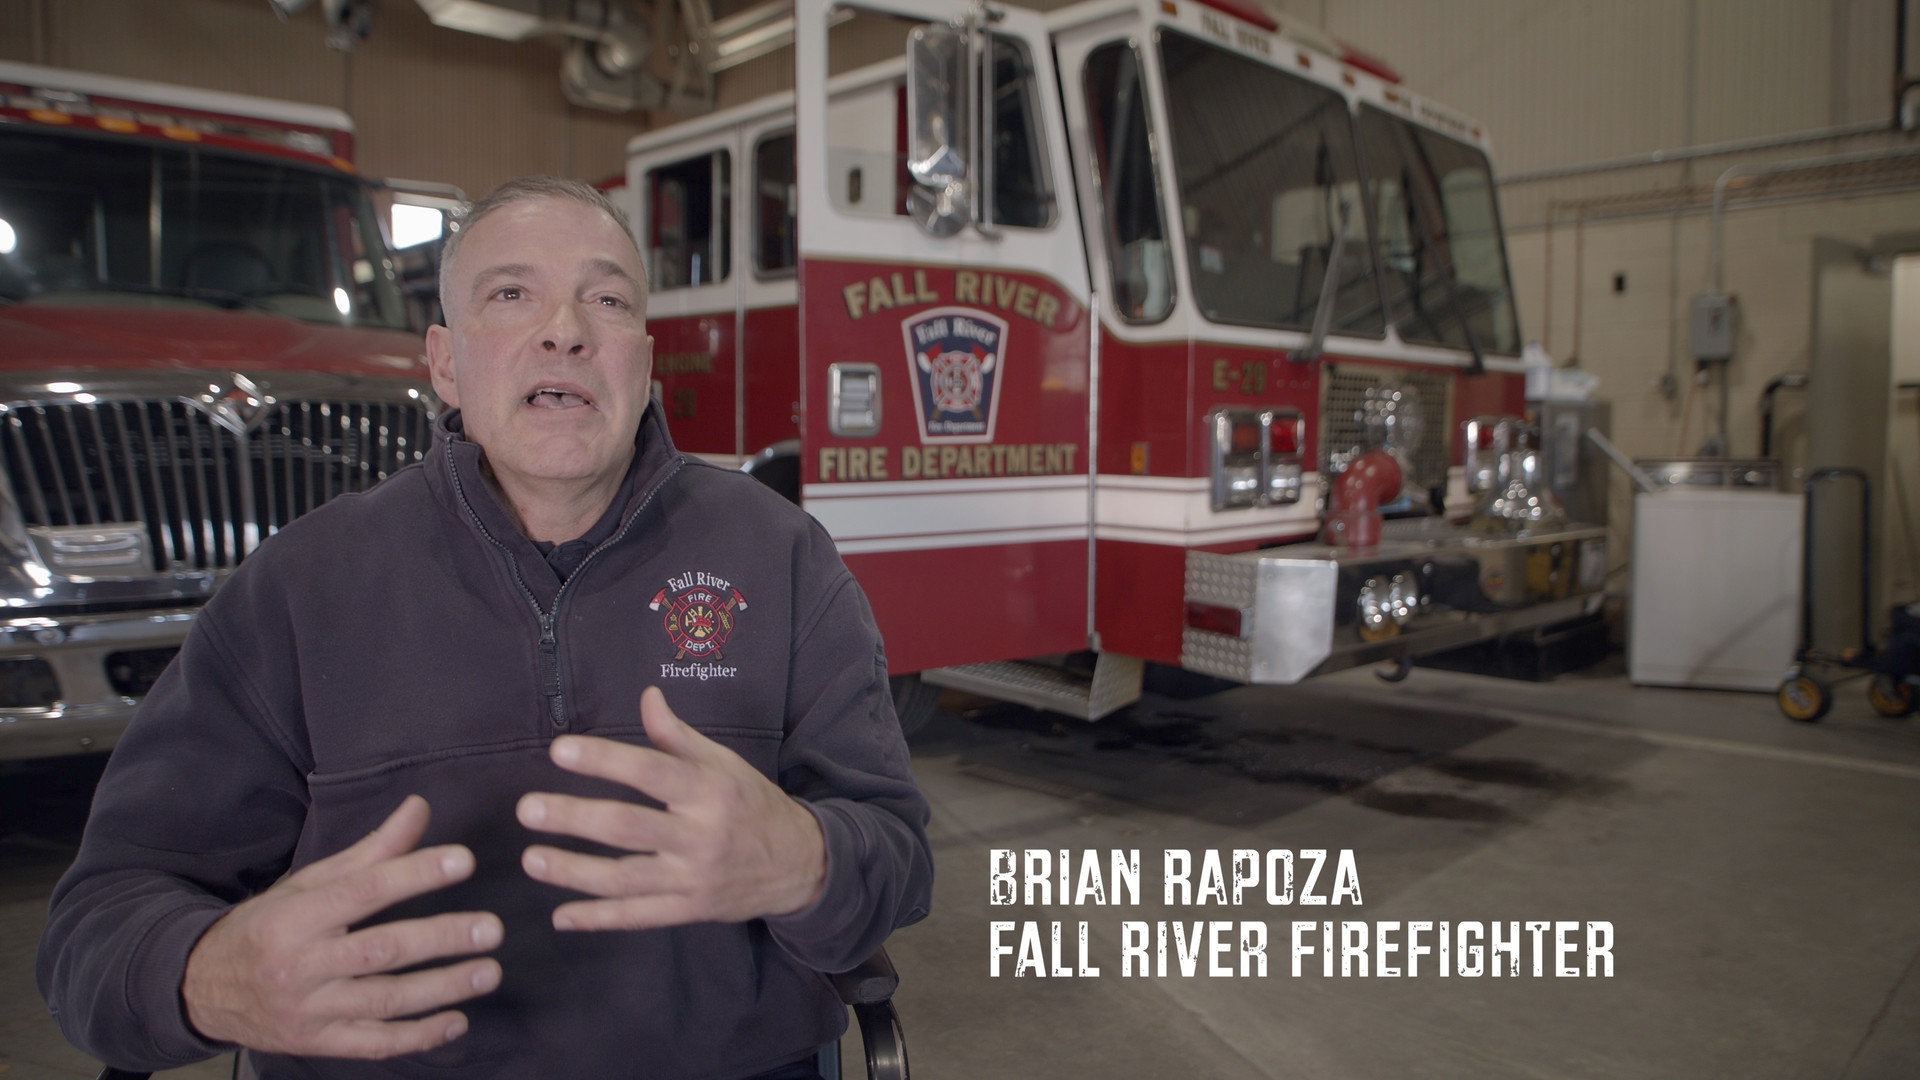 The Just A Kid From Fall River Documentary Film is about my life and journey. However, the most important part is where it started, Fall River, Massachusetts. This clips explains what it means to be from this city. This is Brian Rapoza. A friend who perfectly explains the energy that comes from growing up in this city. There's something special there. It's hard to describe, but it mostly comes down to pride of Doing your best and helping others. That's the reason I still go back and visit today. So many people looked out for me and cared about my path. There's an unwritten rule to help the person next to you. Everyone struggles. We all have our hurdles and need help. Fall River people go out of their way to help others. Thank you Brian for being a part of this documentary!